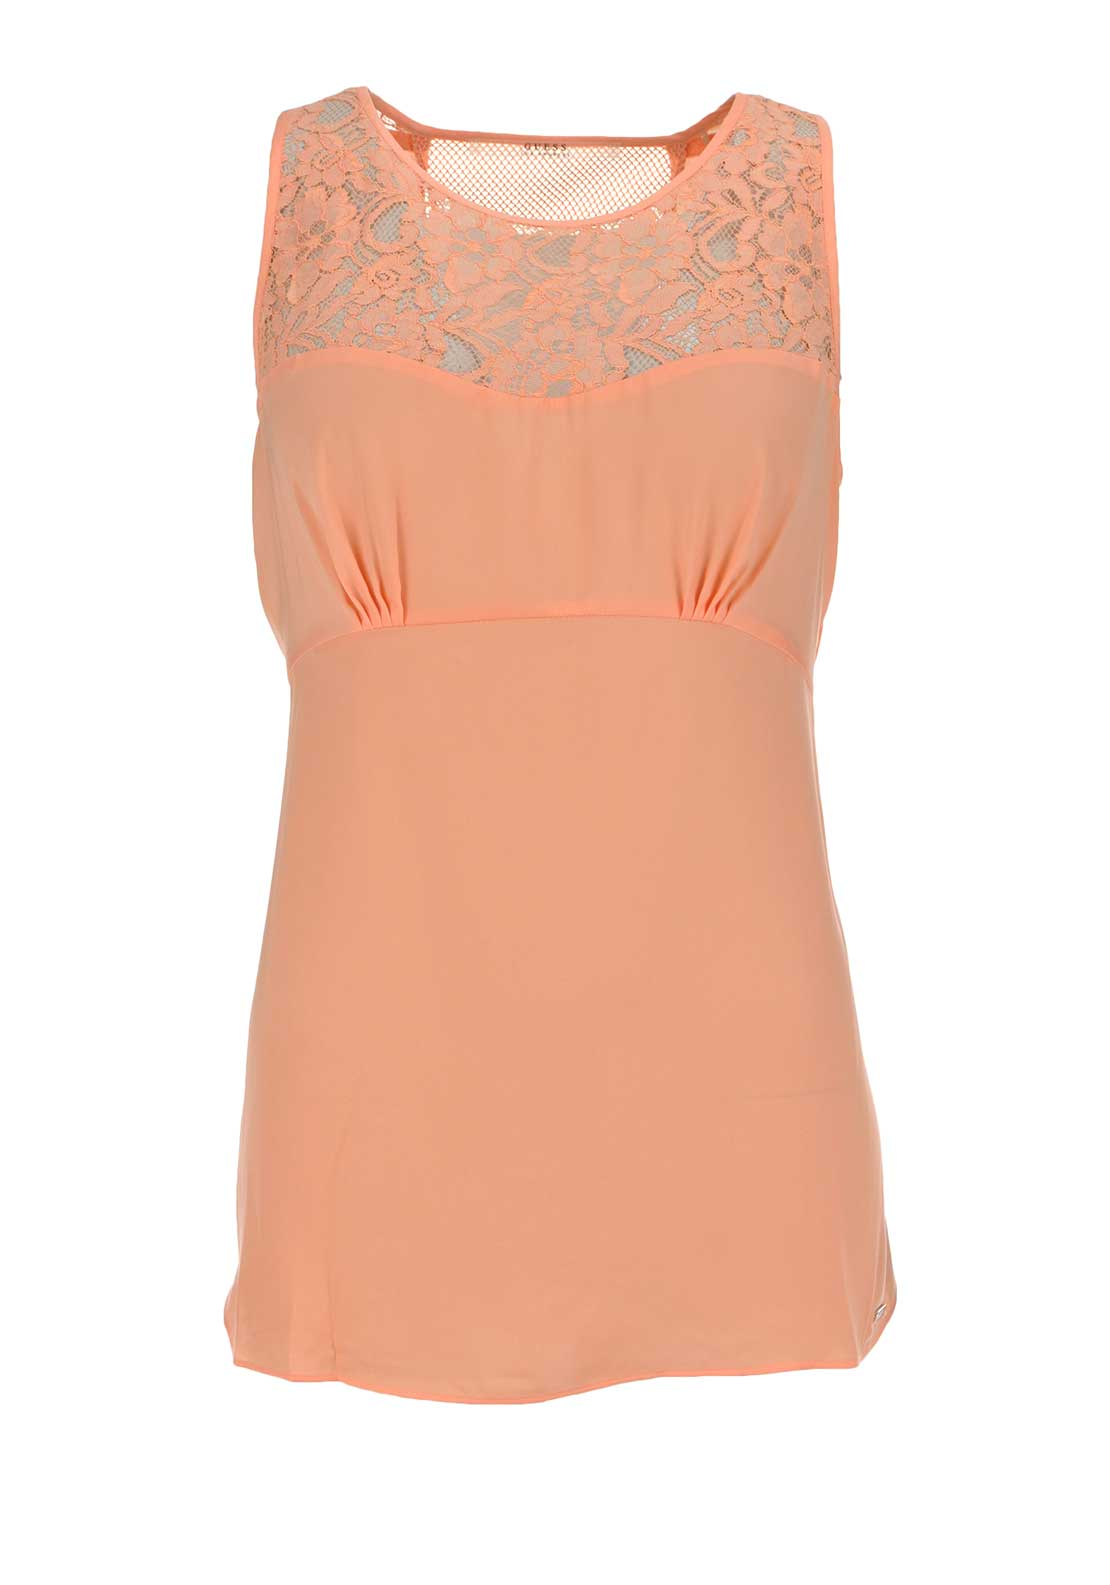 Guess Womens Estella Lace Panel Satin Top, Peach